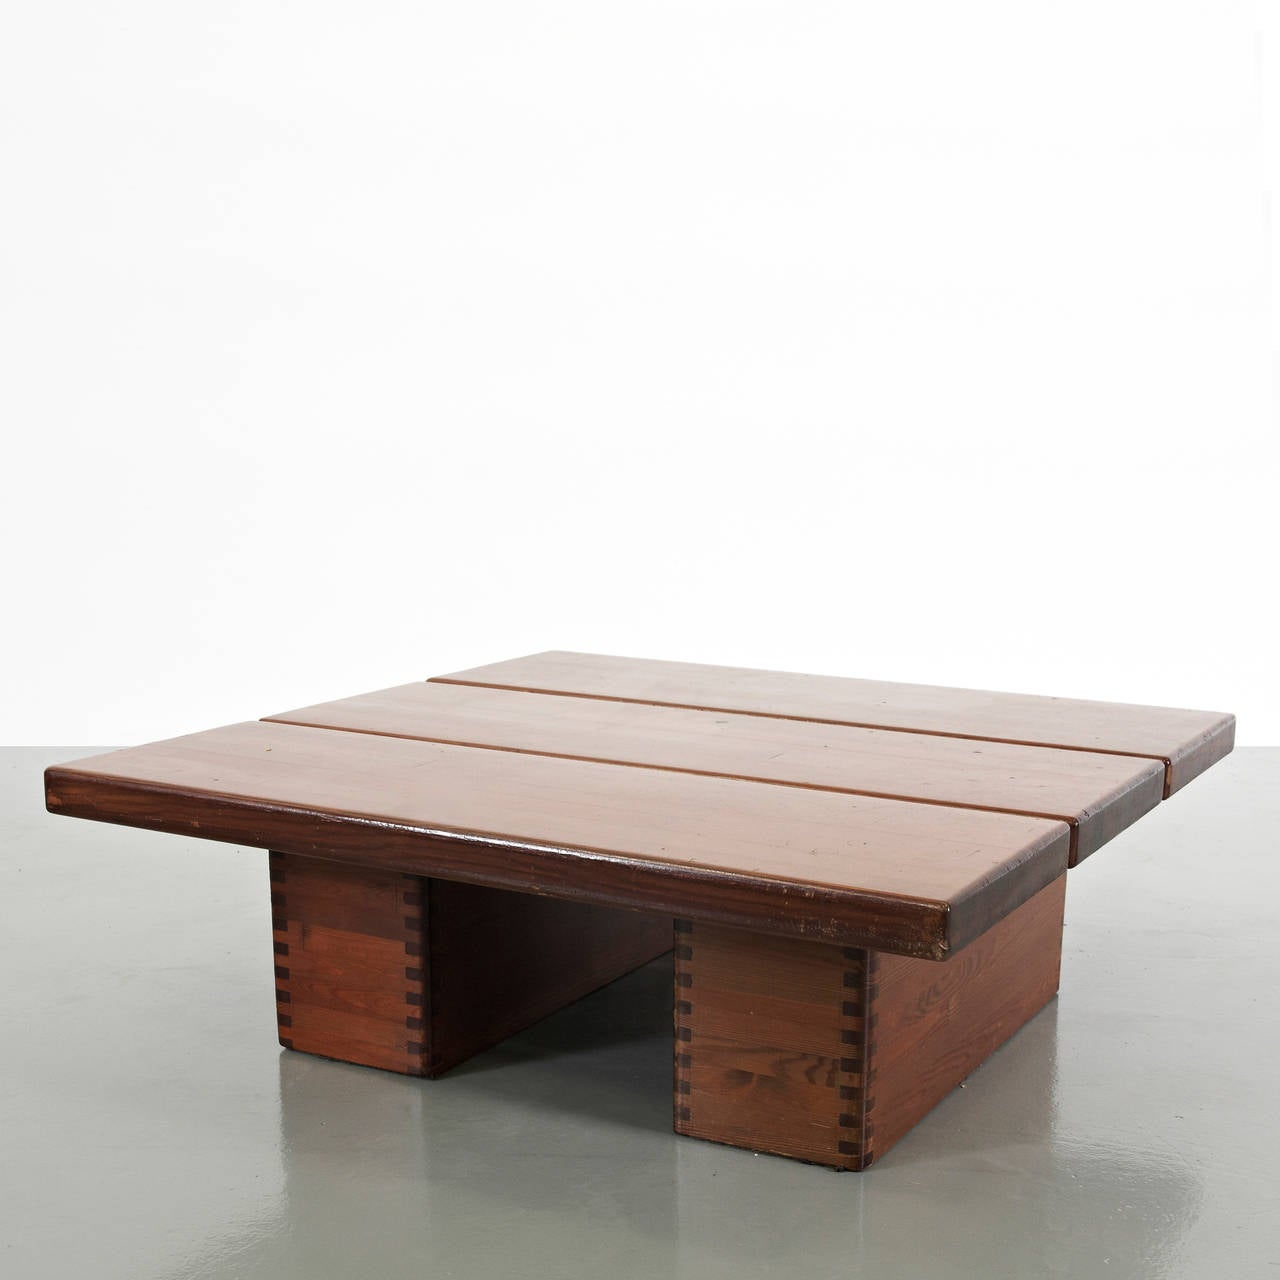 ilmari tapiovaara pirkka coffee table 1955 for sale at 1stdibs. Black Bedroom Furniture Sets. Home Design Ideas